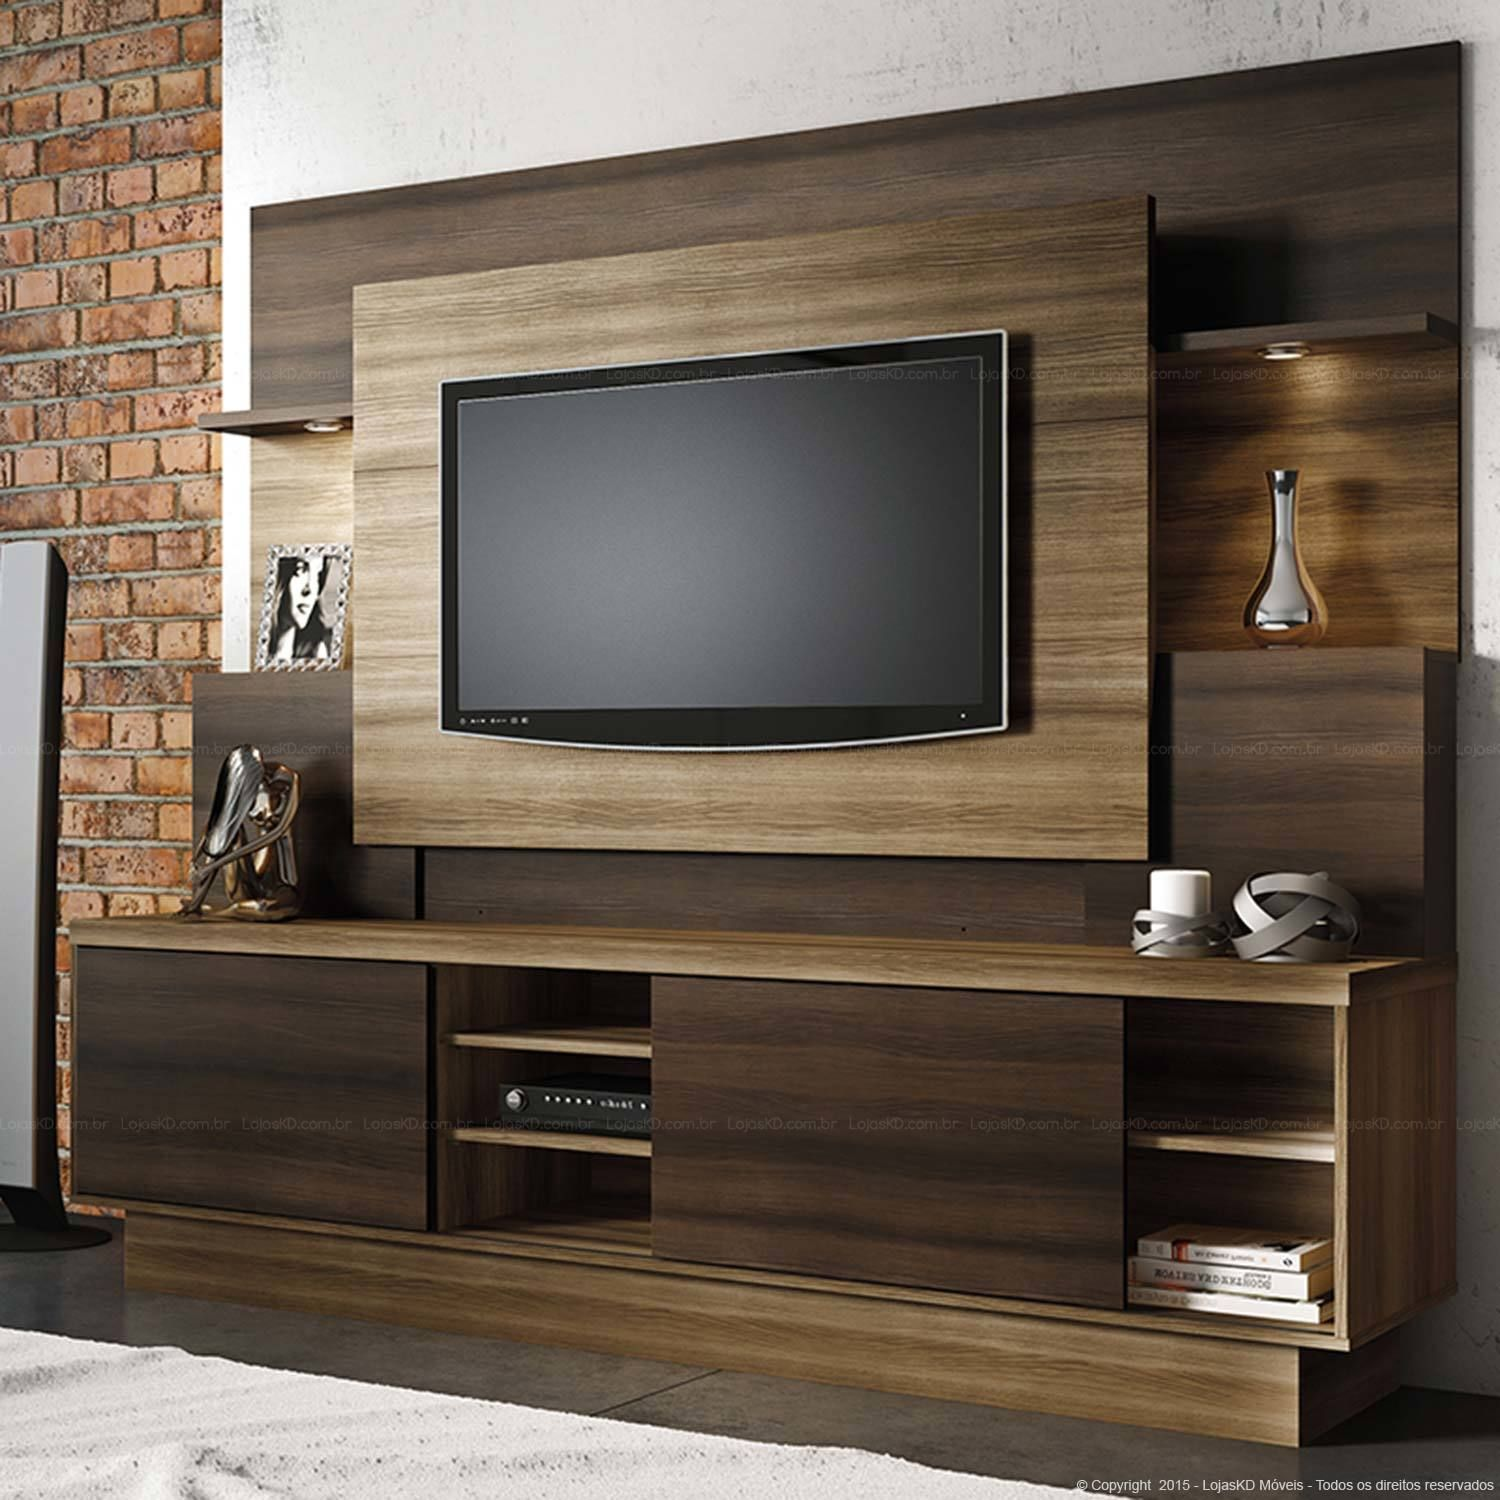 Estante home theater para tv at 55 polegadas aron - Dresser as tv stand in living room ...